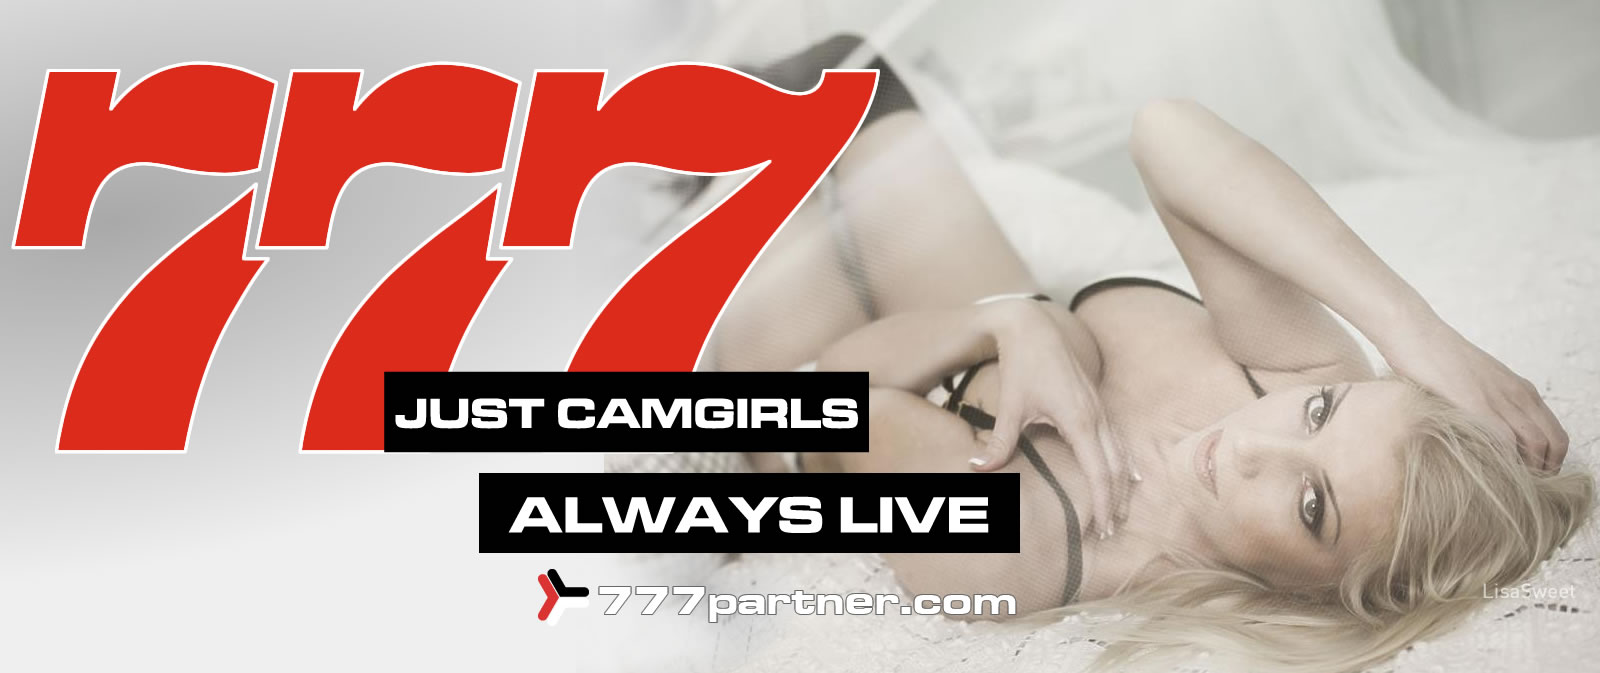 777partner.com Webmasters are welcome!